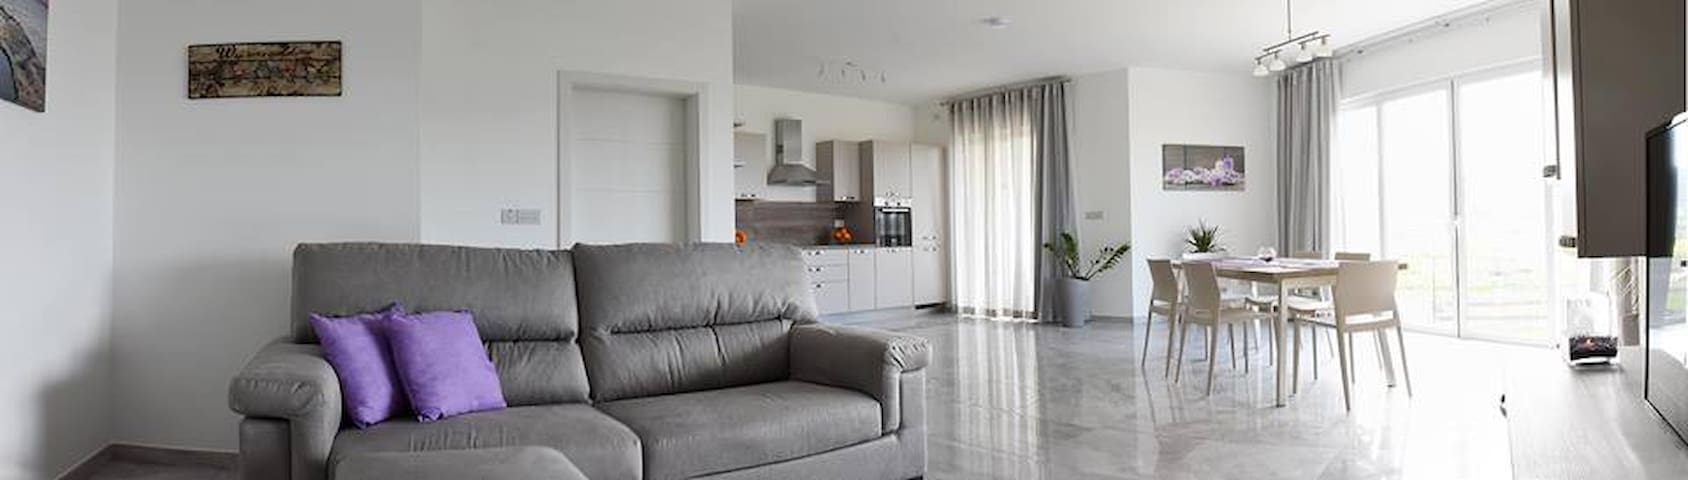 Bella Vista Apartments - Mgarr - Departamento